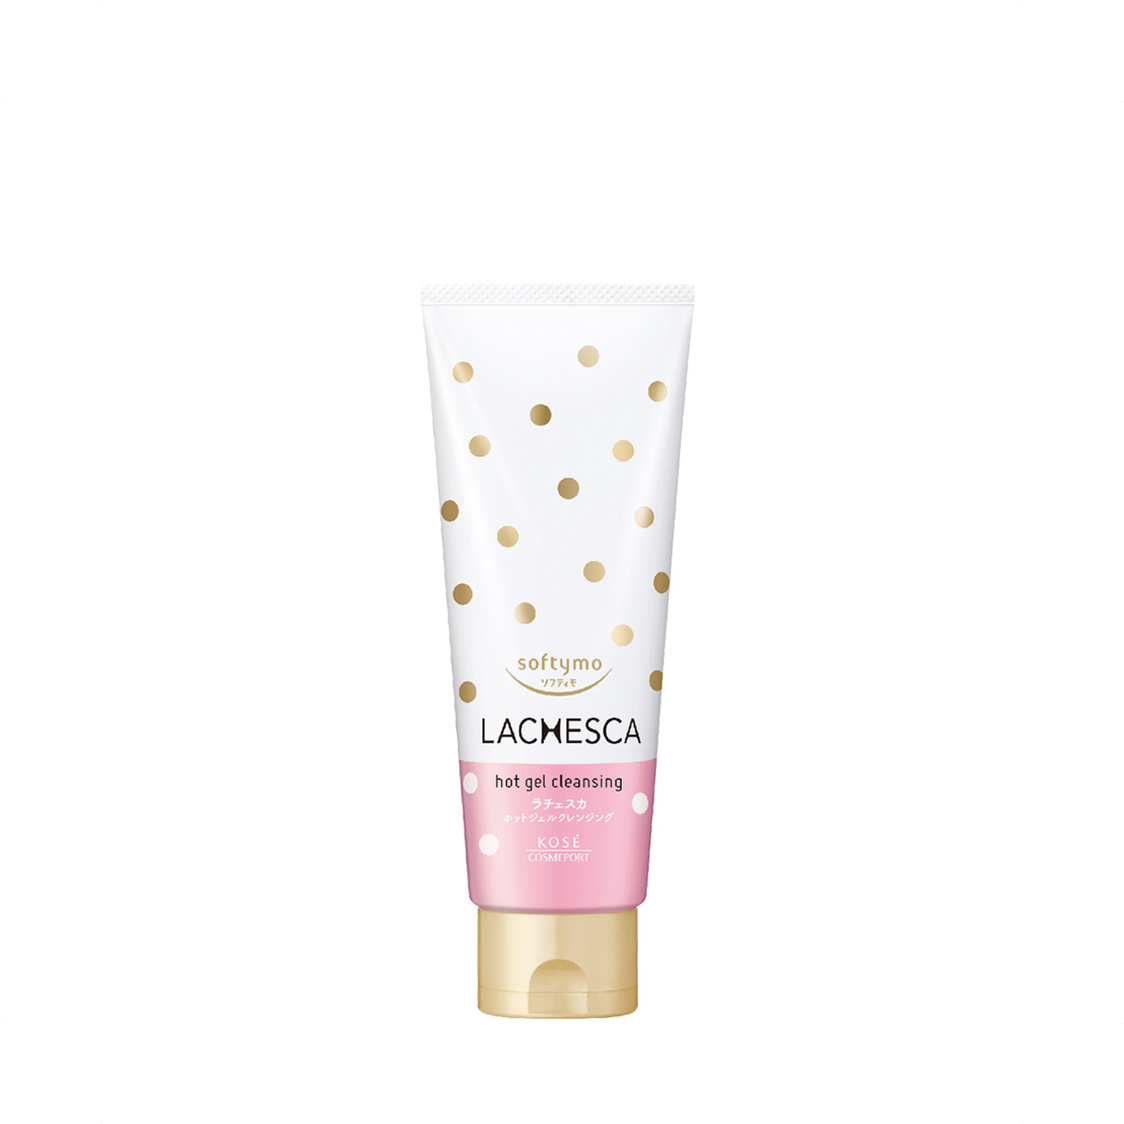 Kose Cosmeport Softymo Lachesca Hot Gel Cleansing